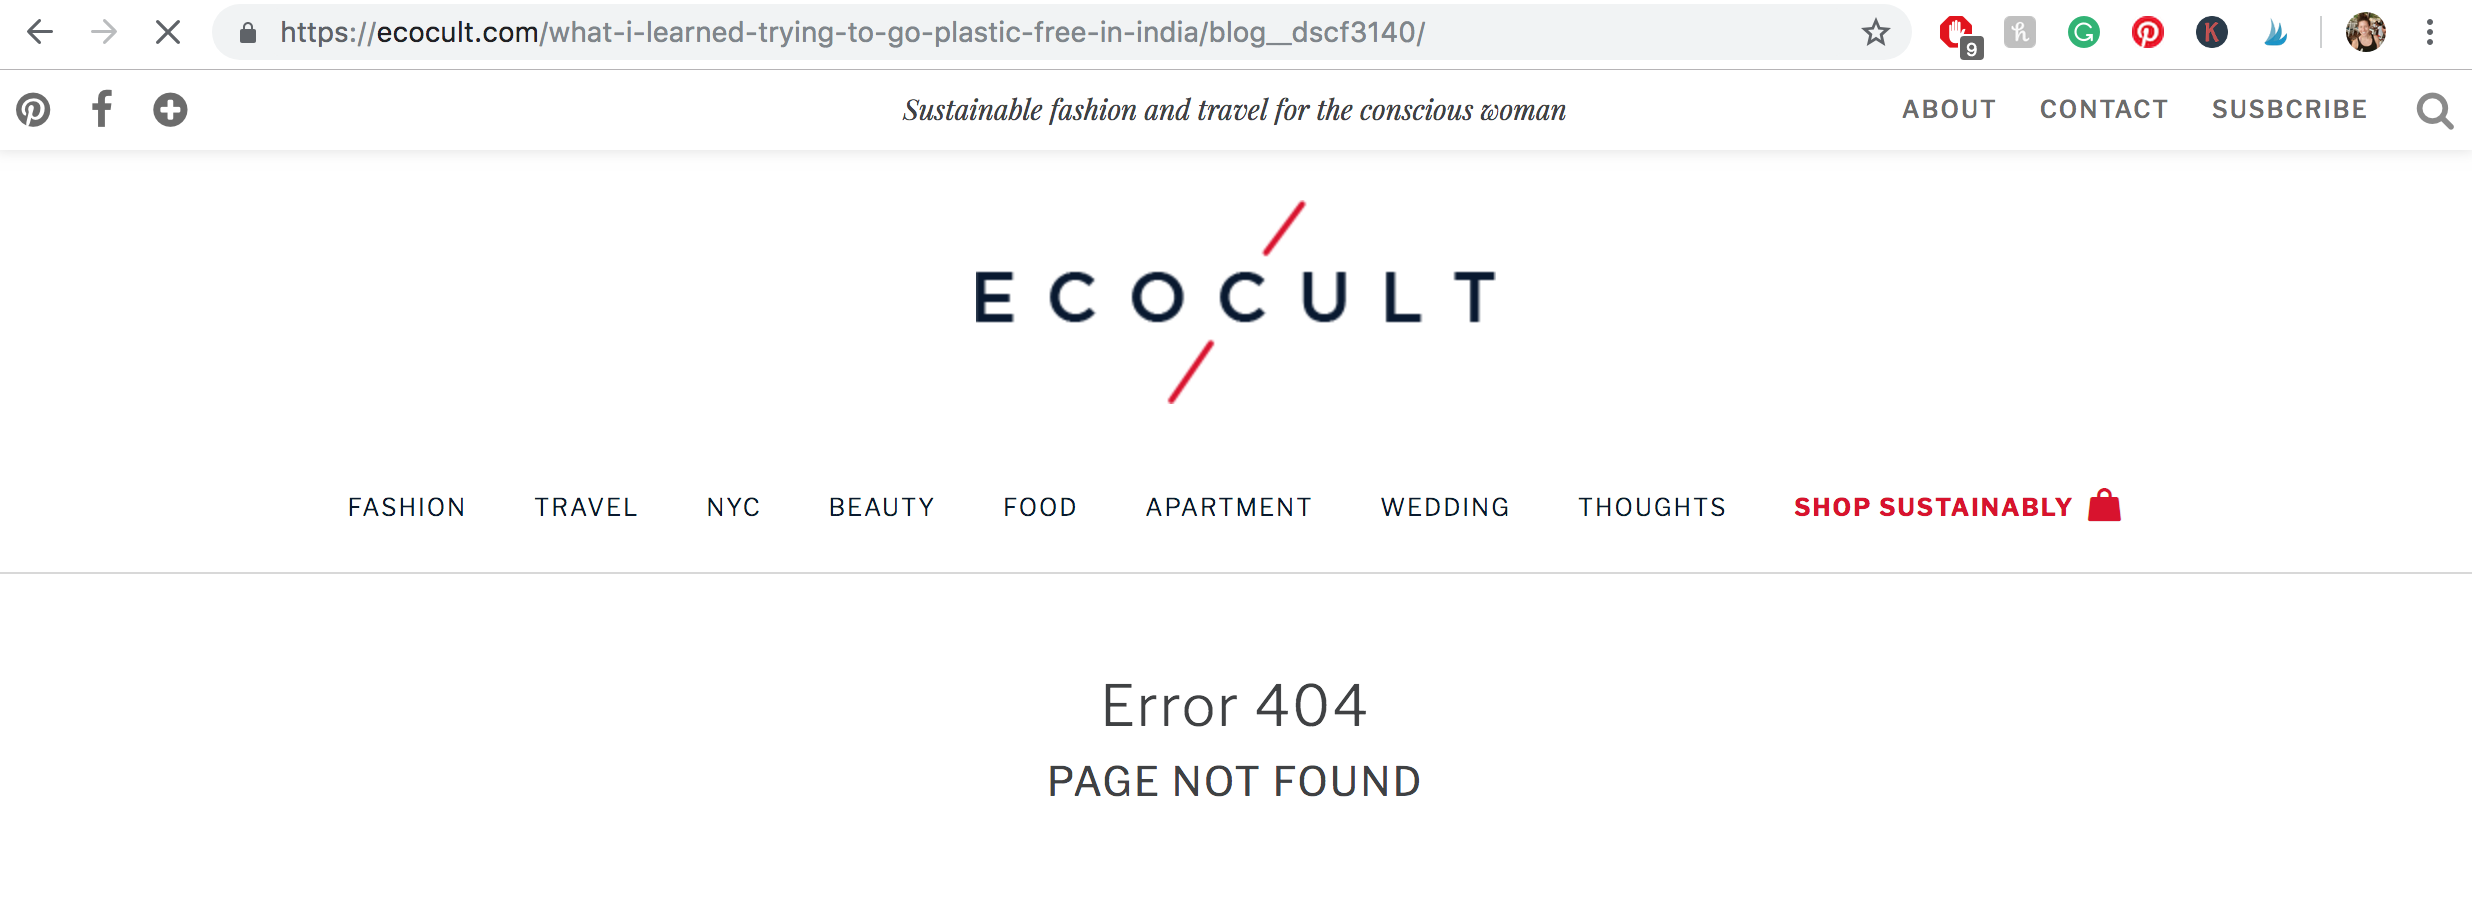 ecocult, plastic free india